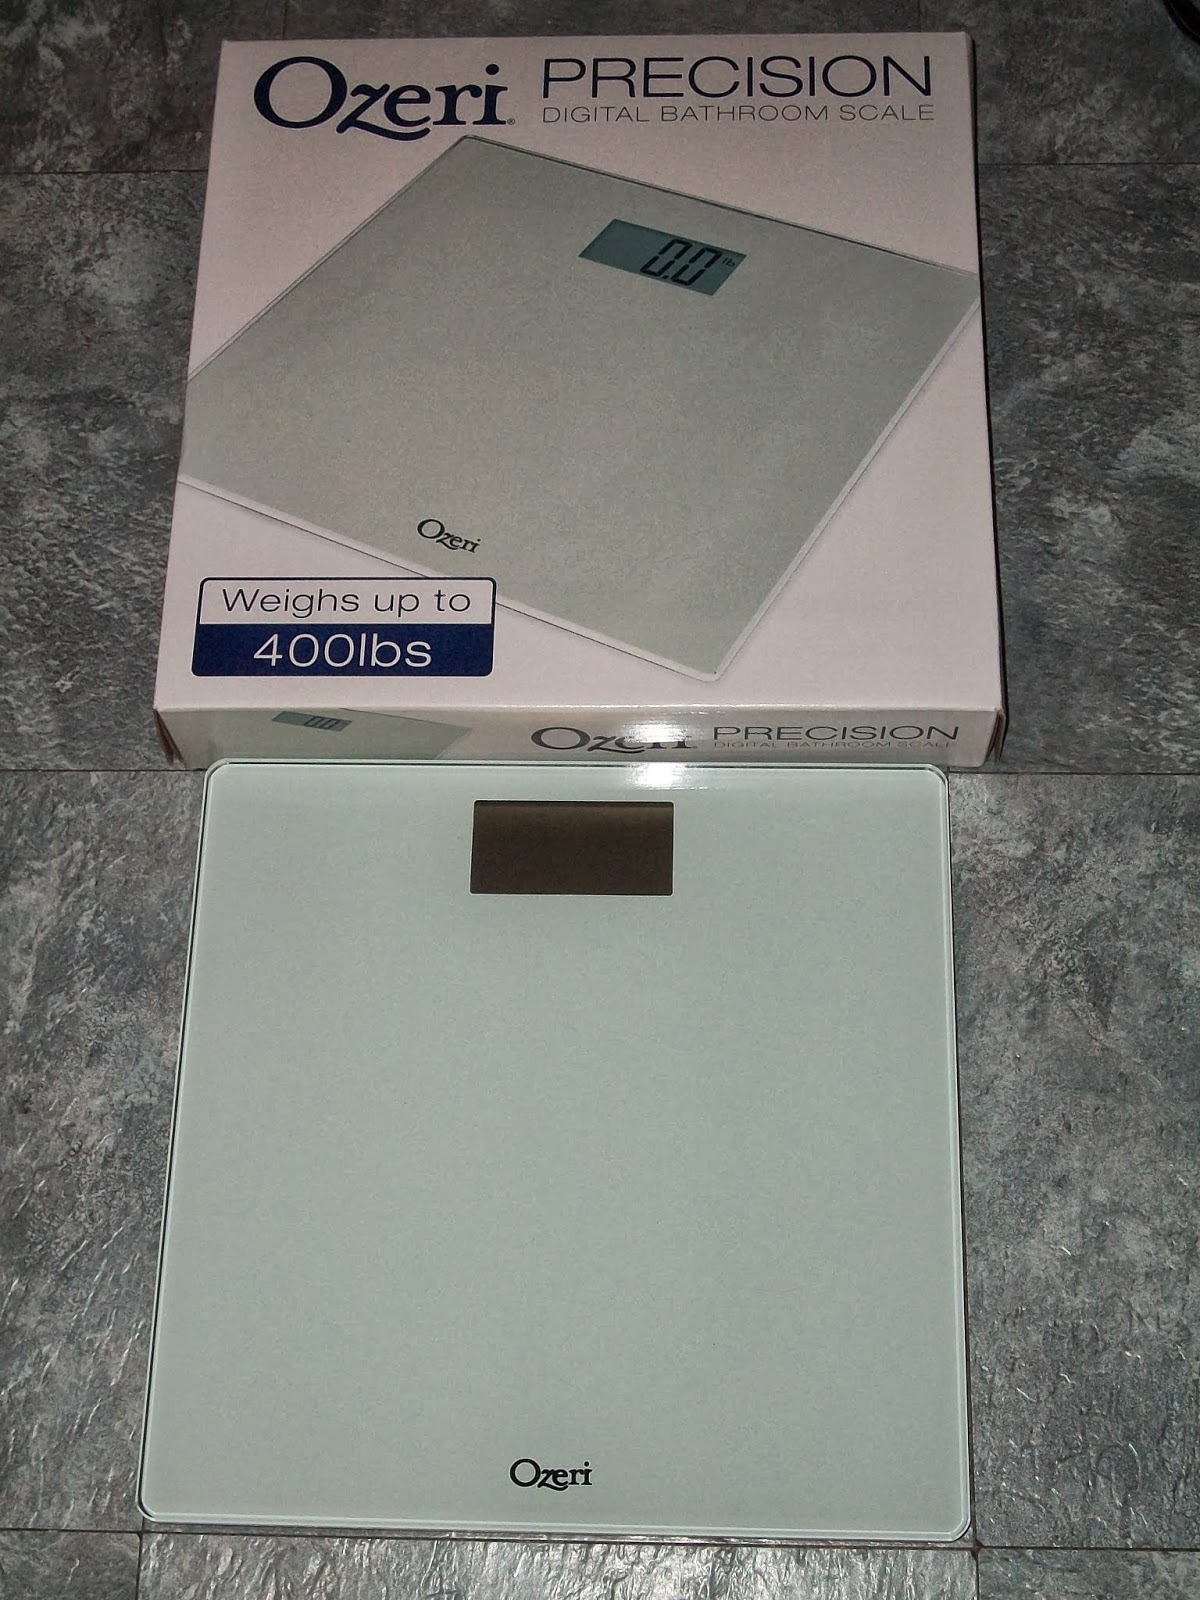 The New Ozeri Precision Digital Bath Scale Review